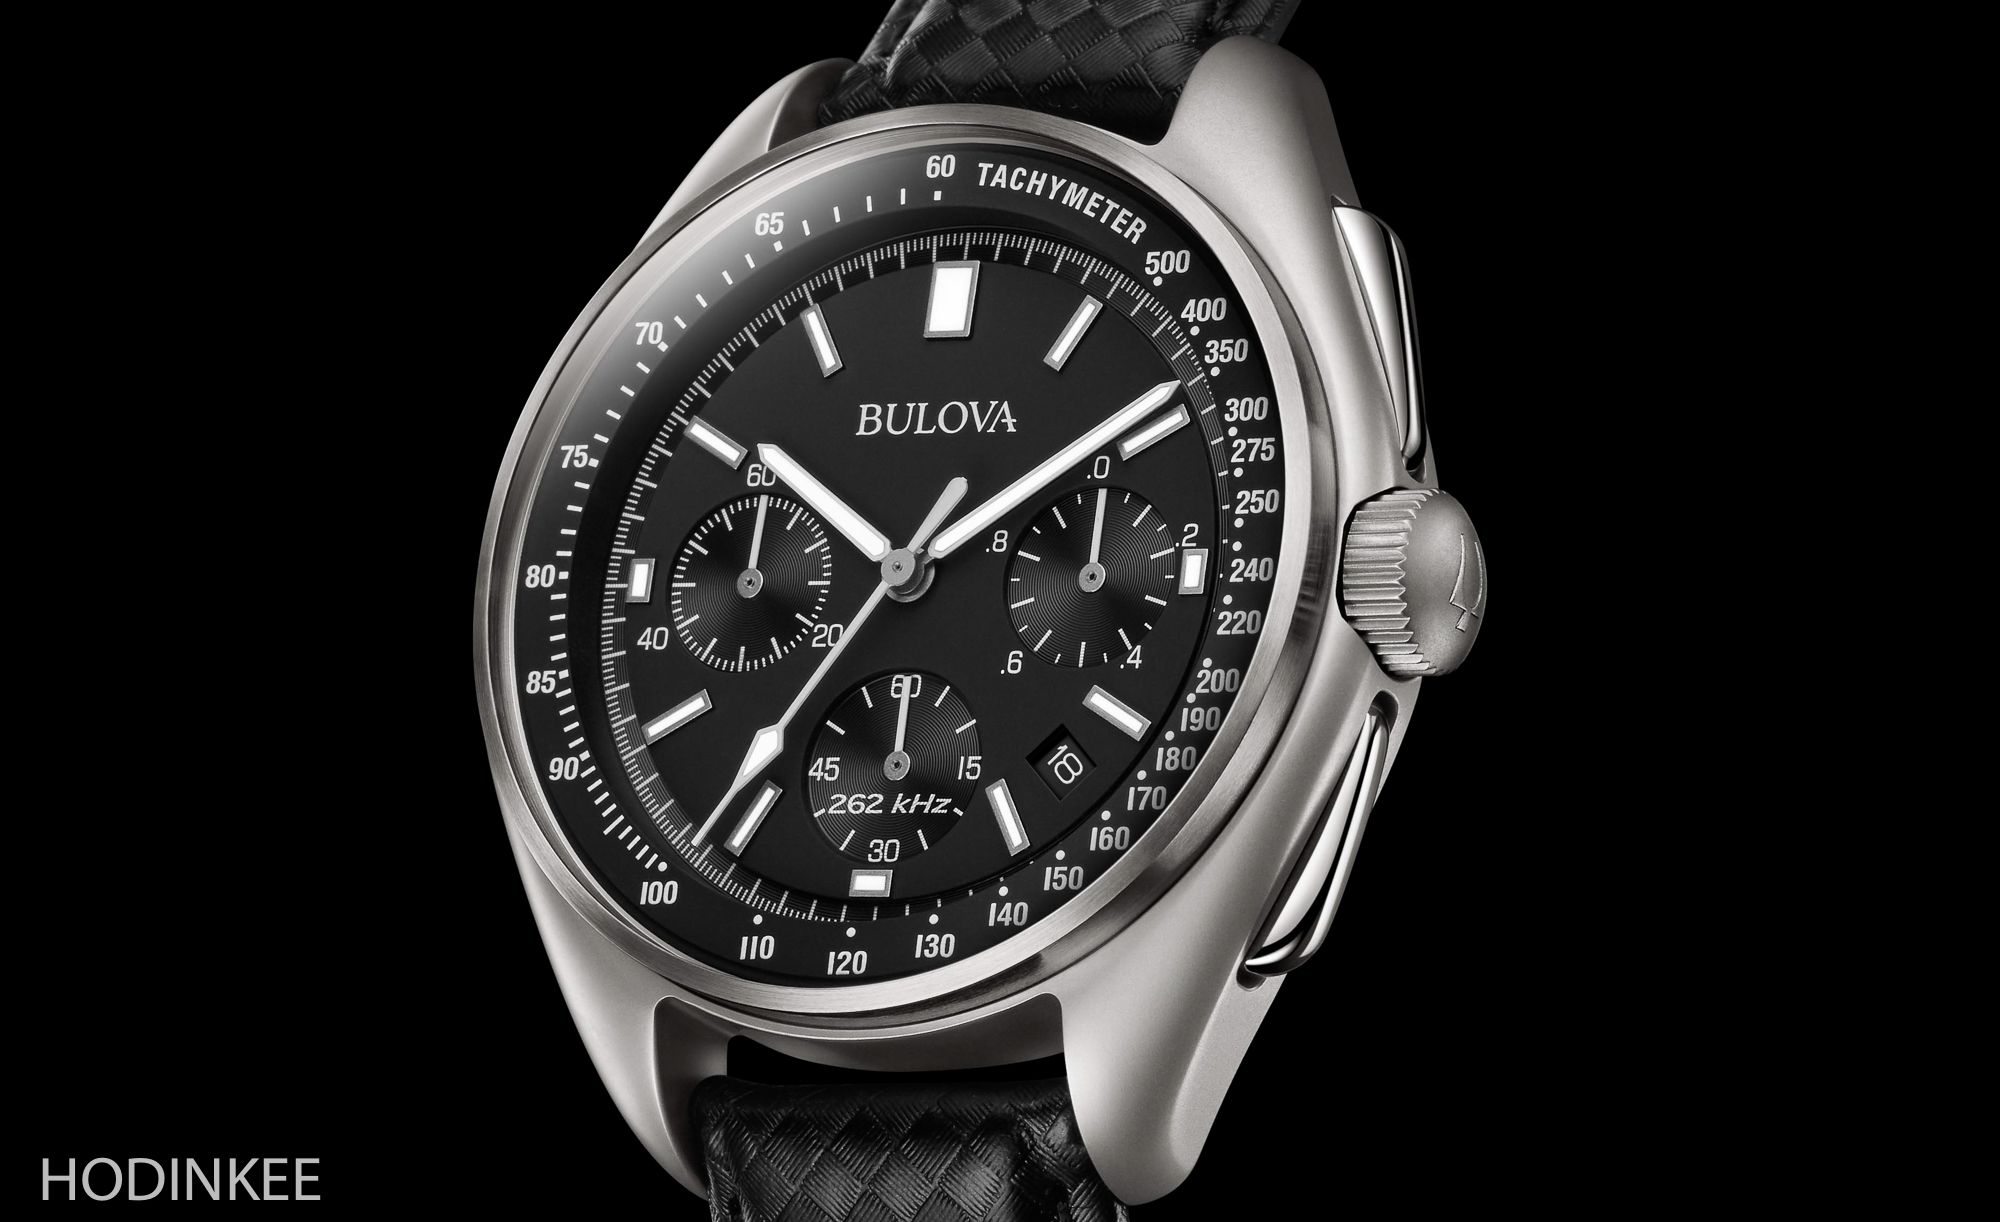 Introducing: The Bulova Moonwatch Re-Edition, With A High Beat Quartz Movement And $550 Pricetag — HODINKEE